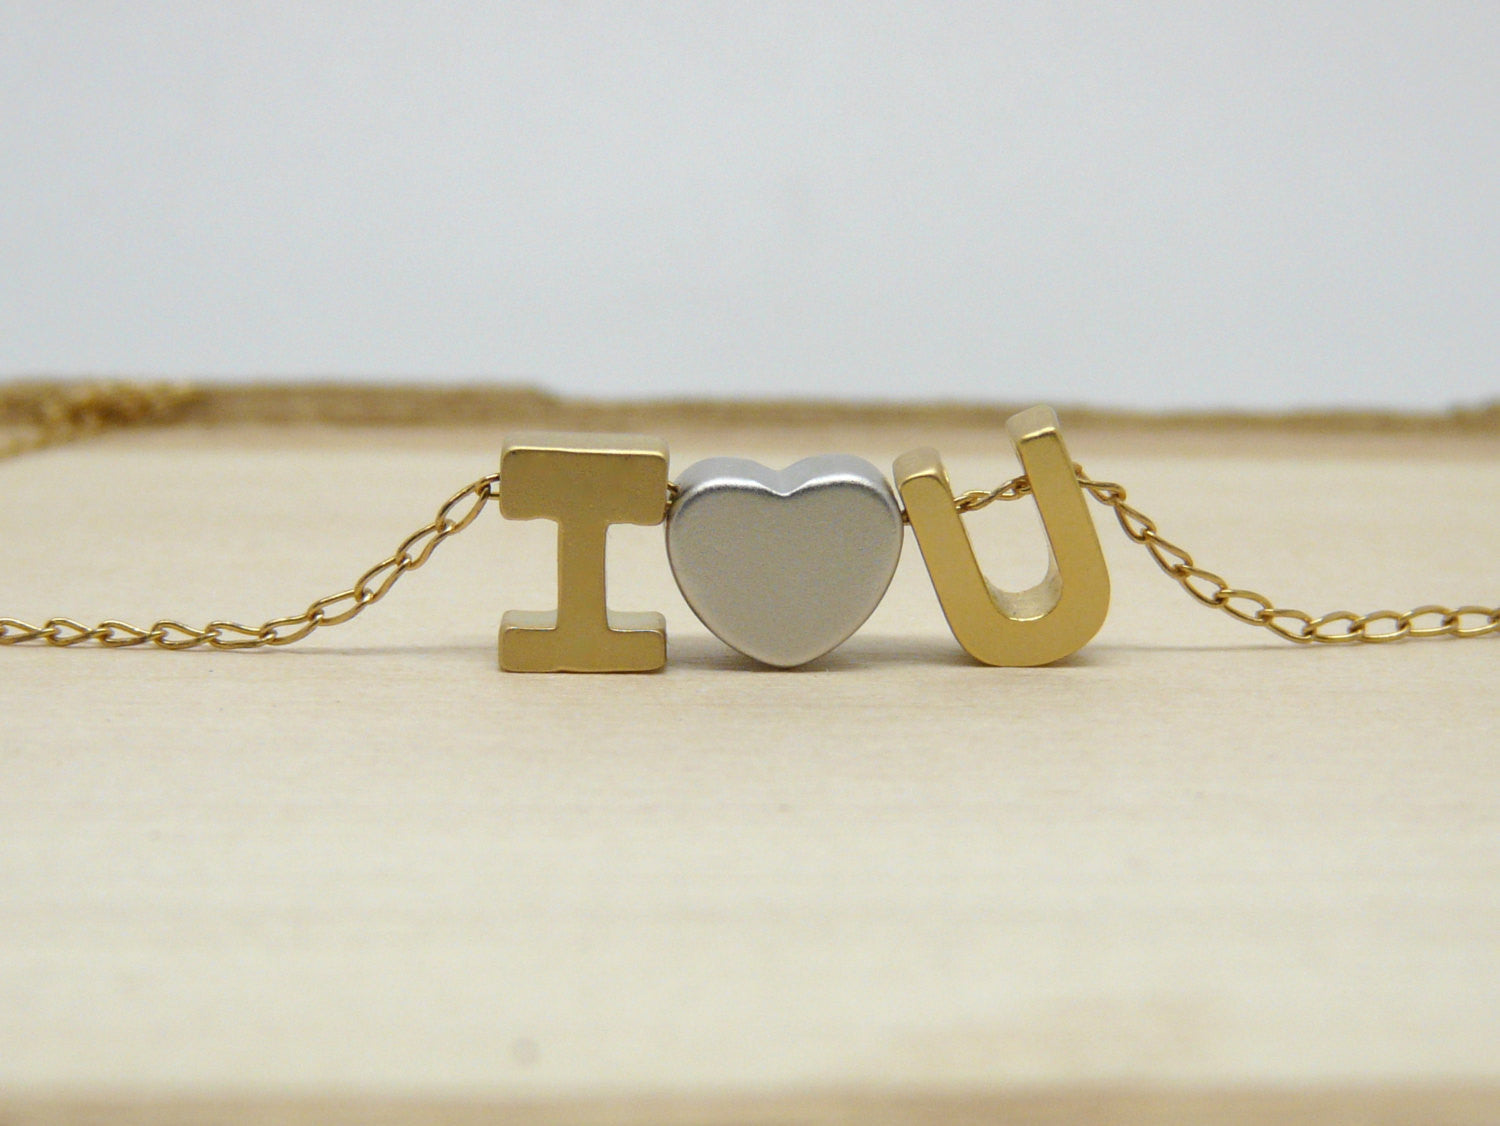 I Love You necklace - OpaLandJewelry